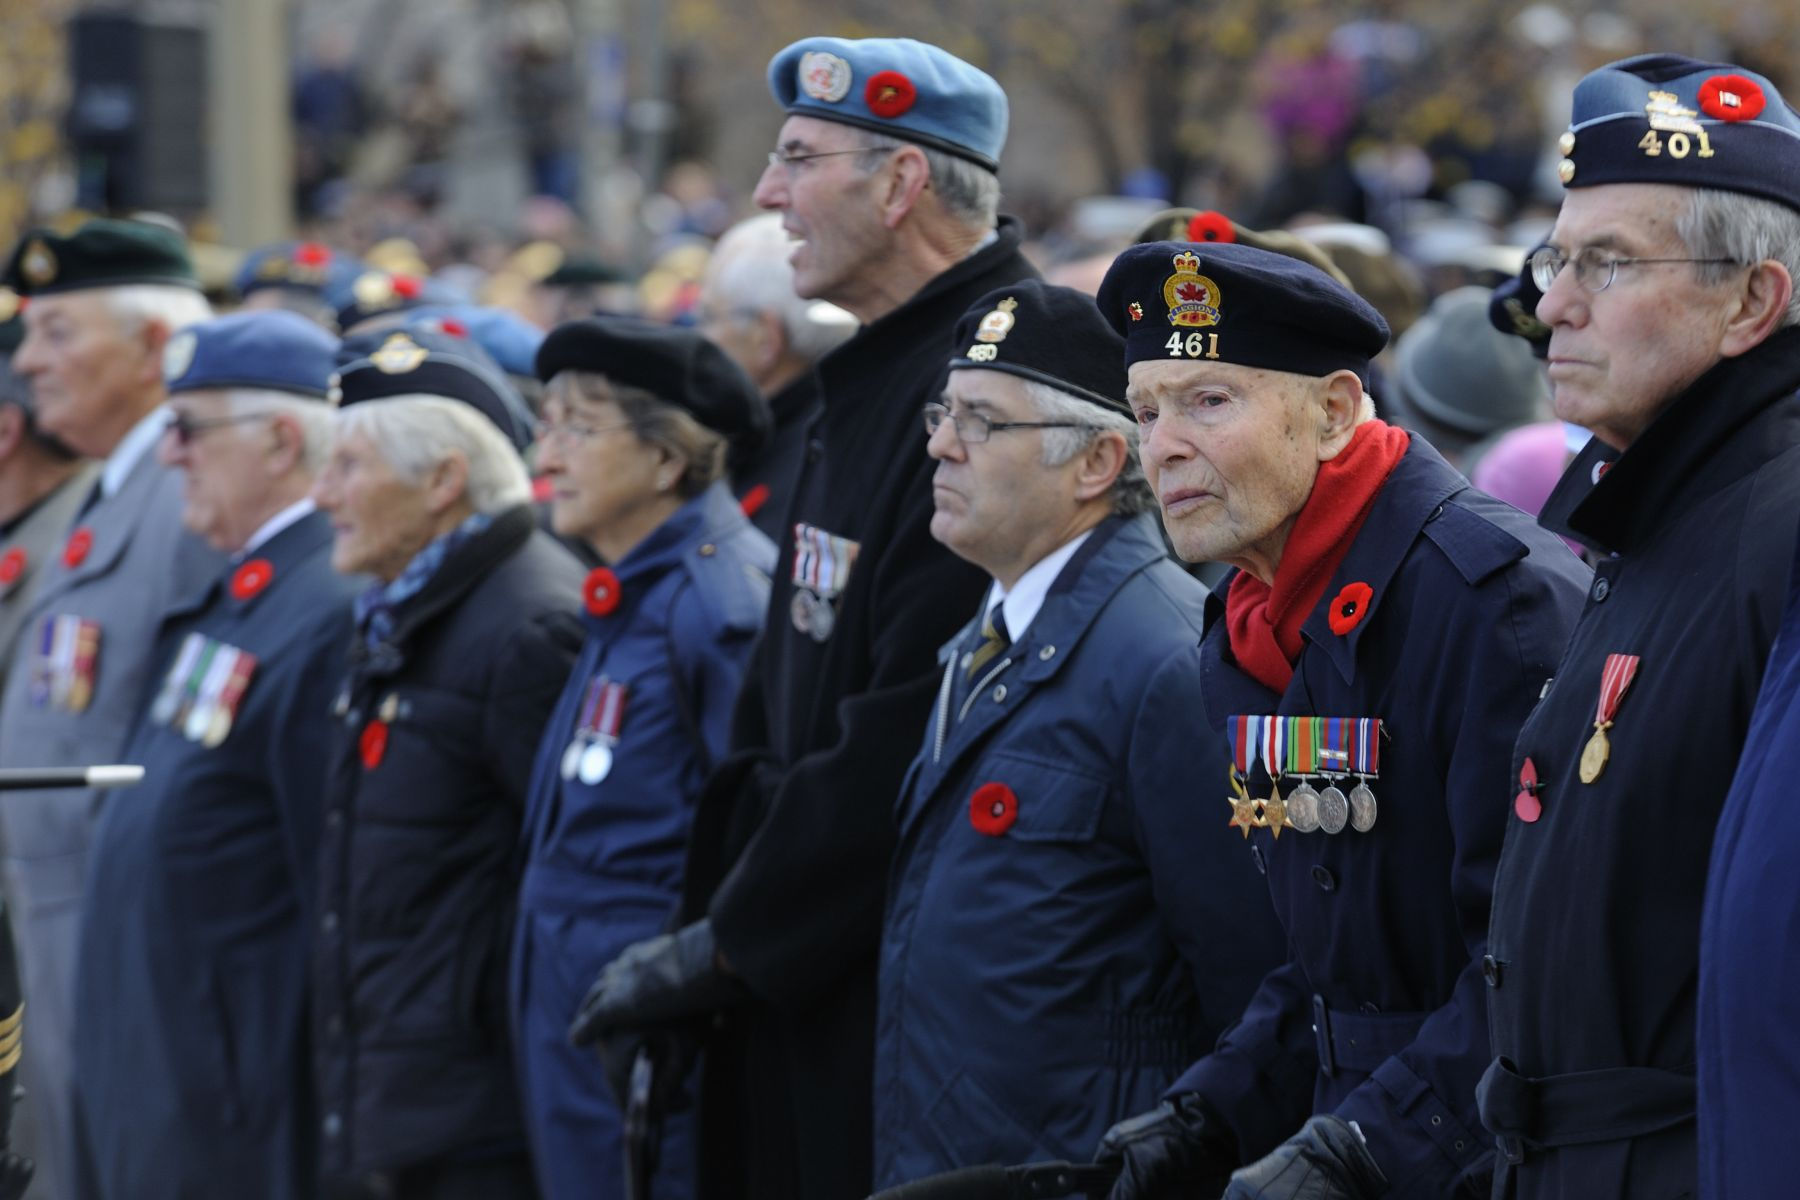 Each year on November 11, Canadians participate in the National Remembrance Day Ceremony at the National War Memorial, in Ottawa, to pay homage to those who have served their country.